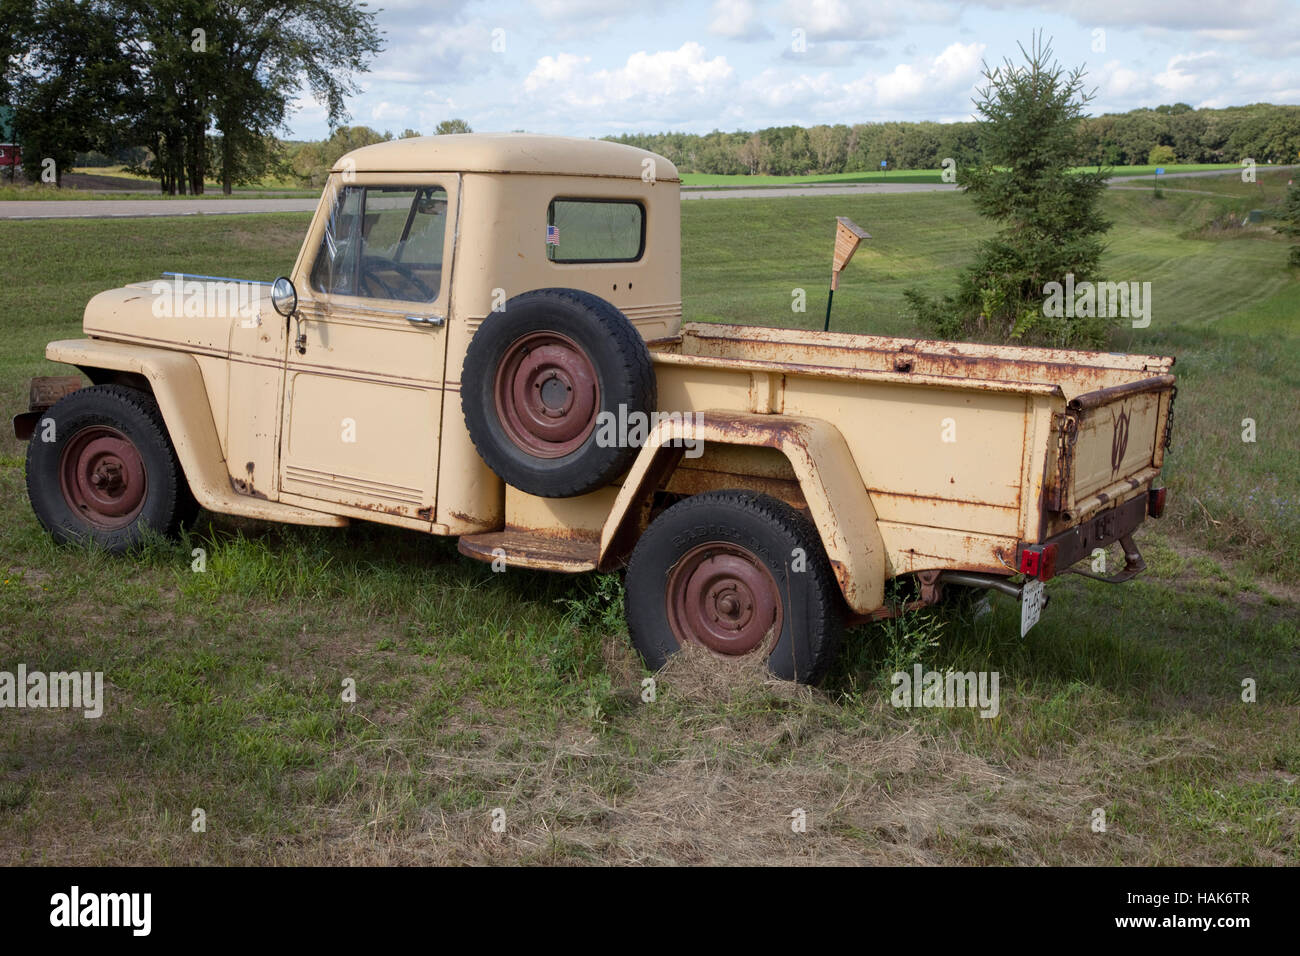 old vintage willys jeep pickup truck for sale at pixie woods sales stock photo 127041623 alamy. Black Bedroom Furniture Sets. Home Design Ideas